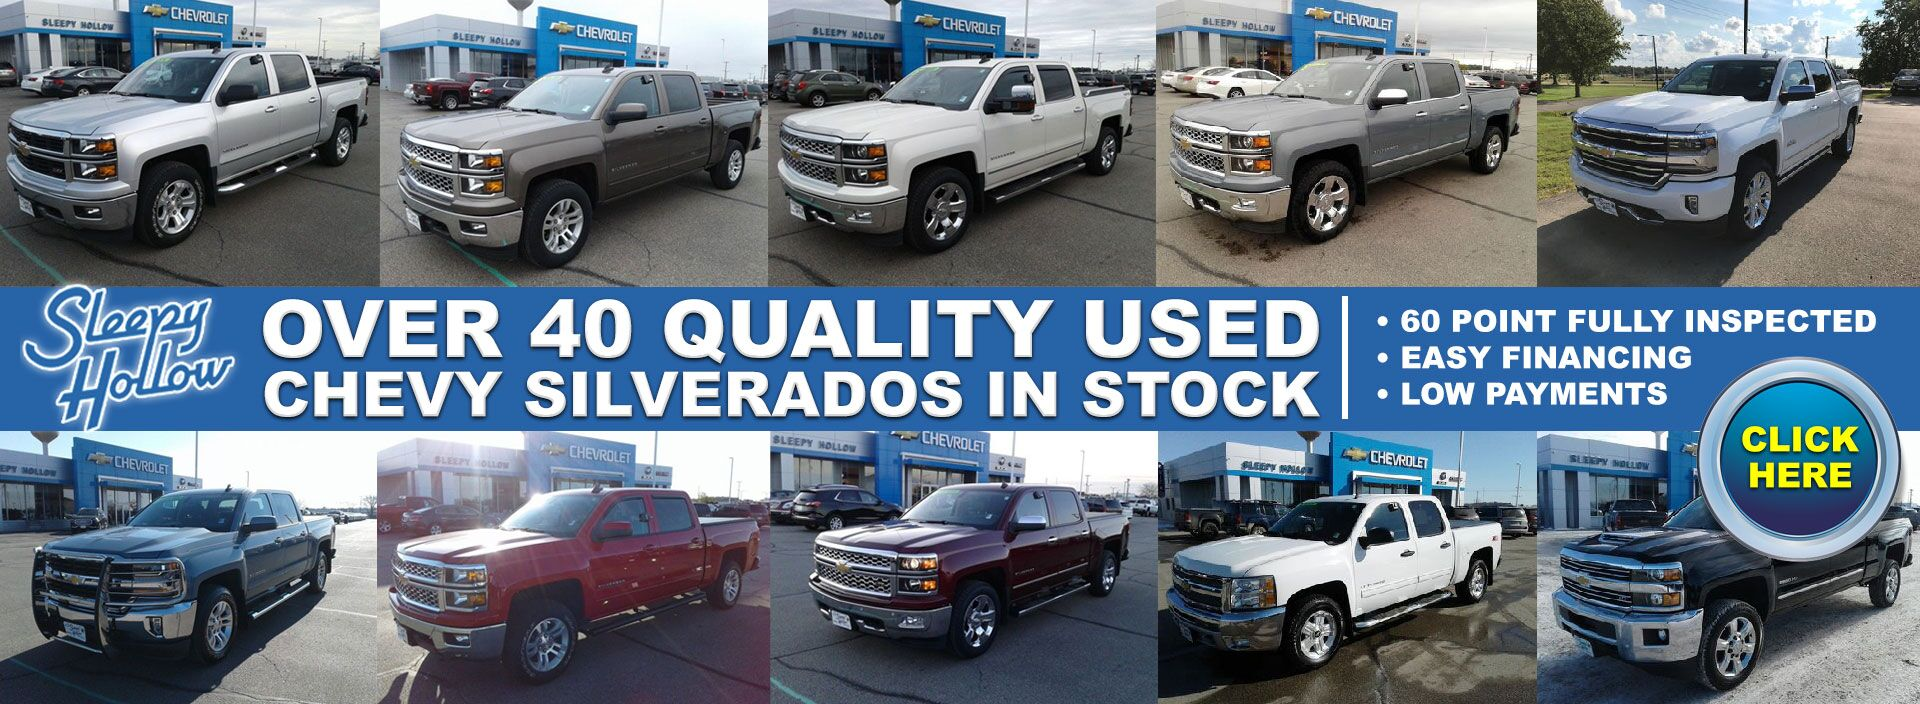 Sleepy Hollow Auto | New Used Car Truck Dealership In ...